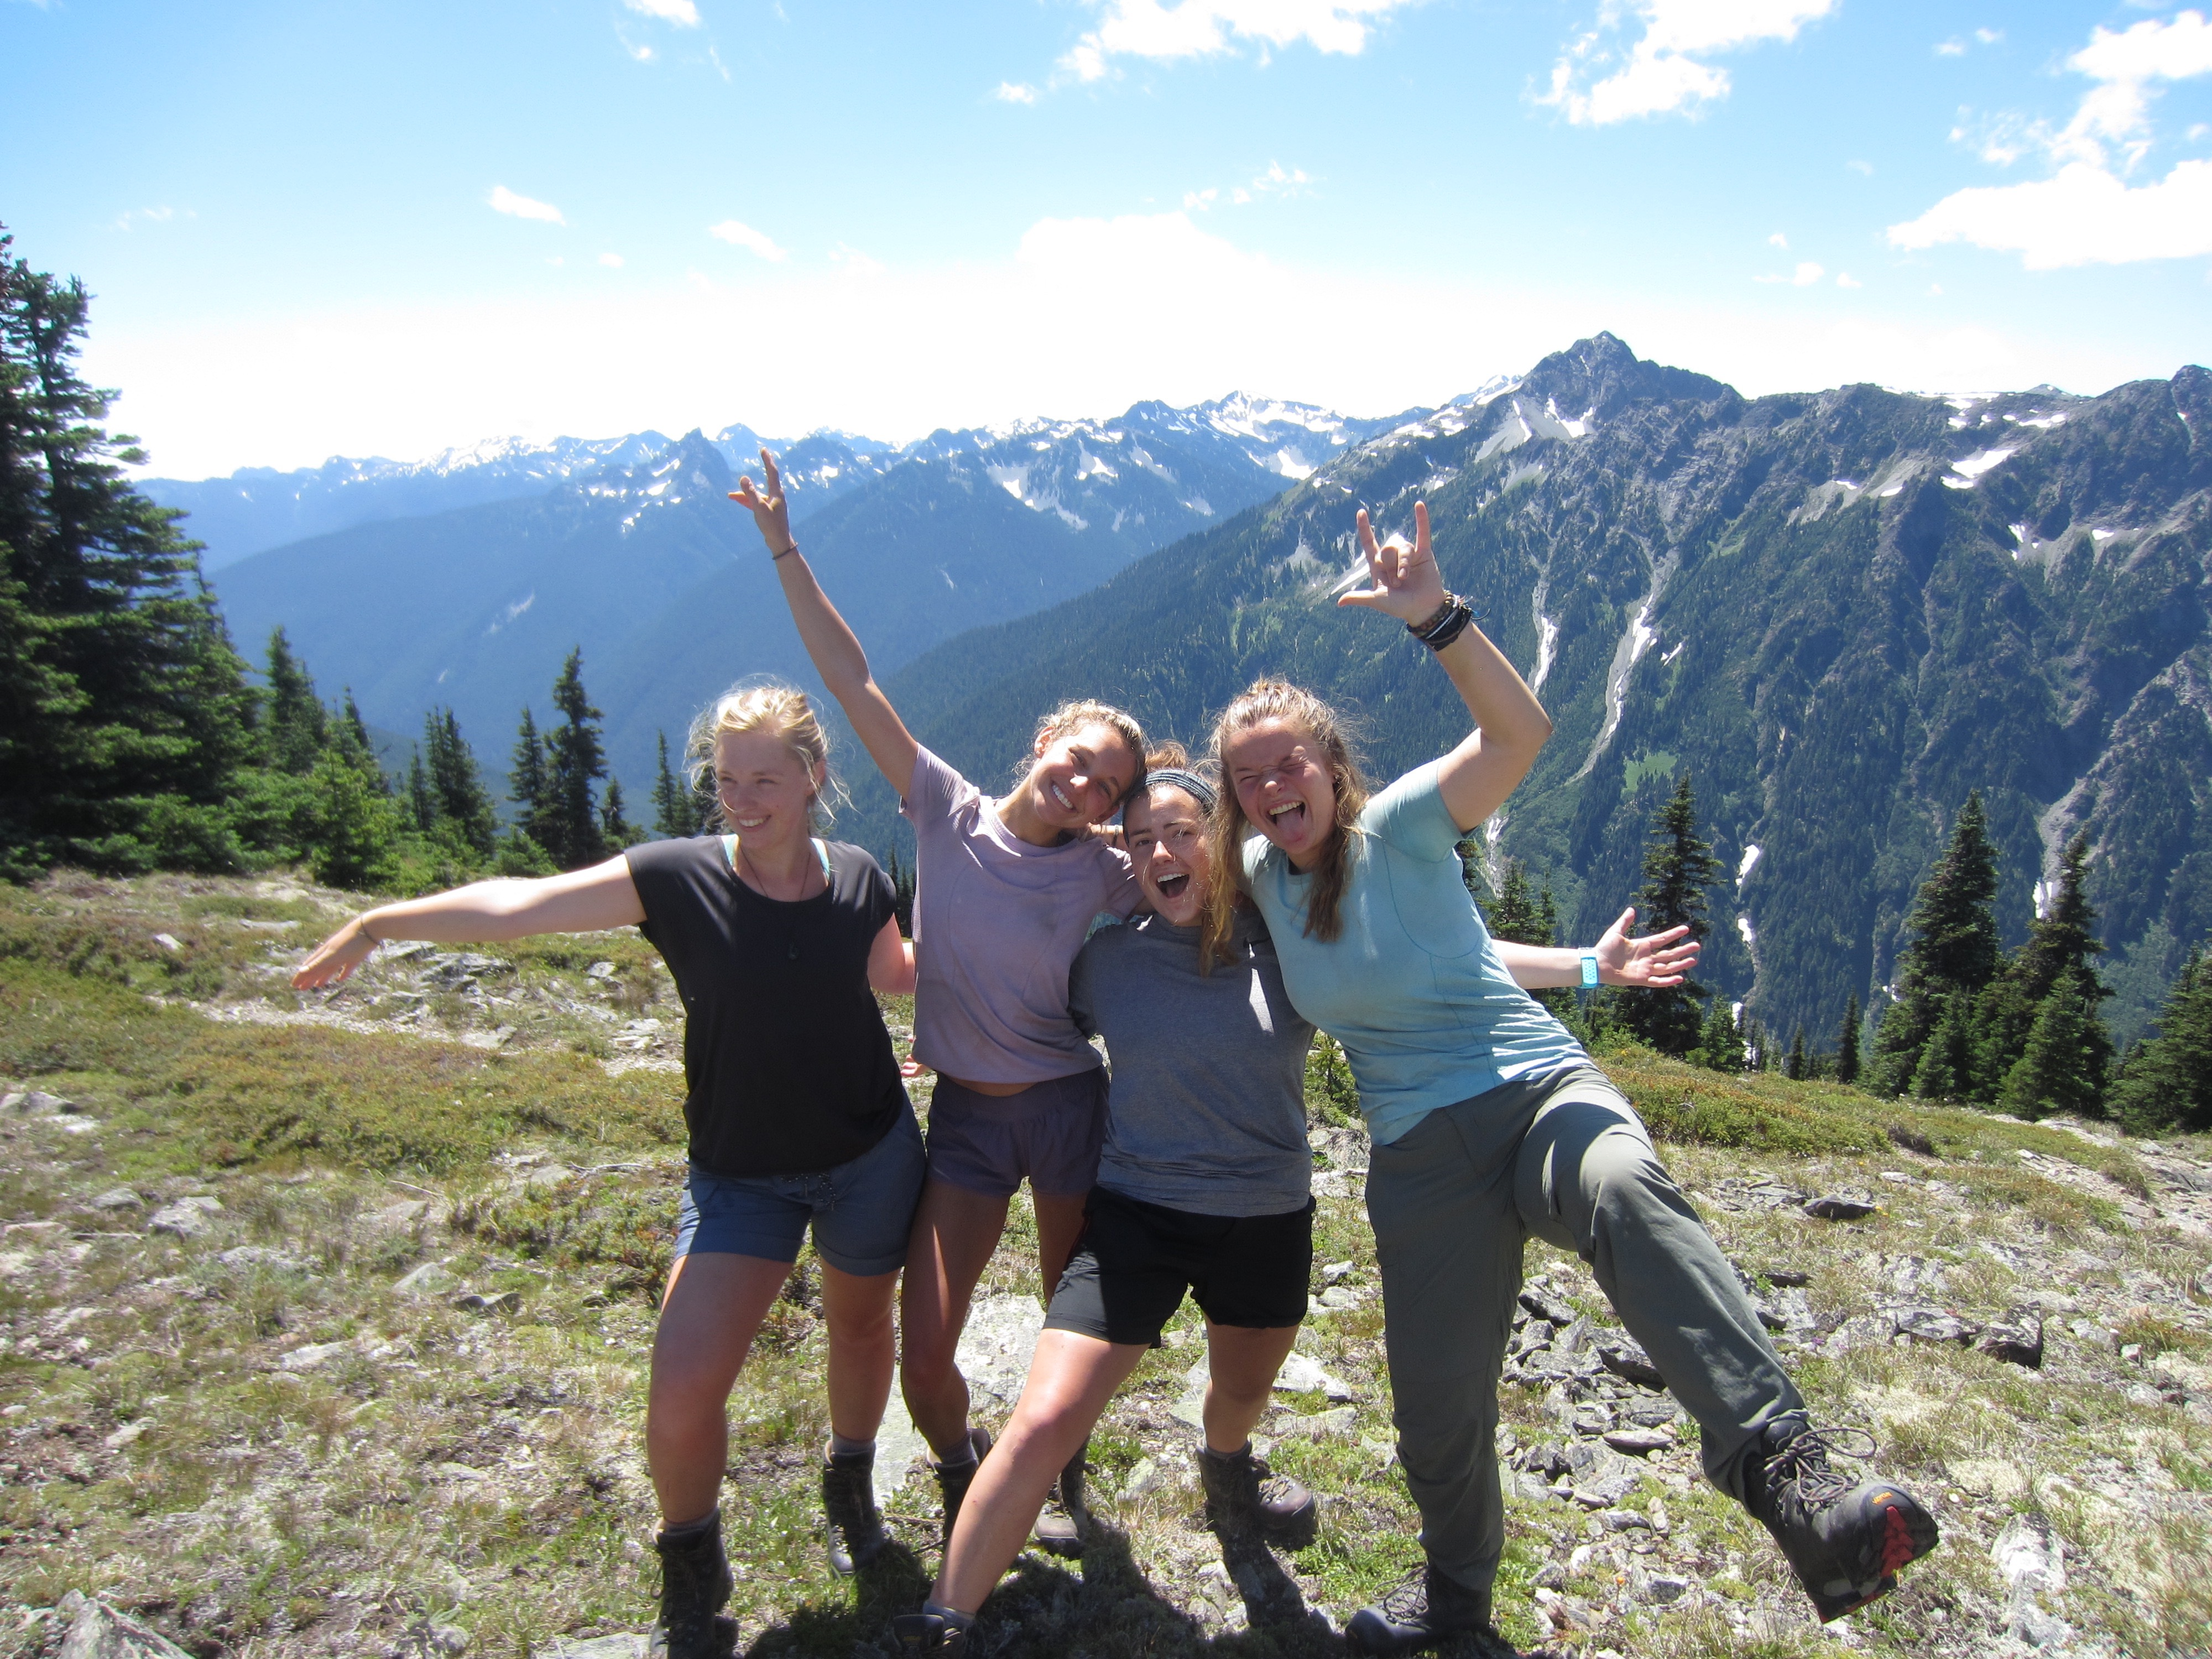 four NOLS students smile and celebrate reaching the top of a pass in the Pacific Northwest together